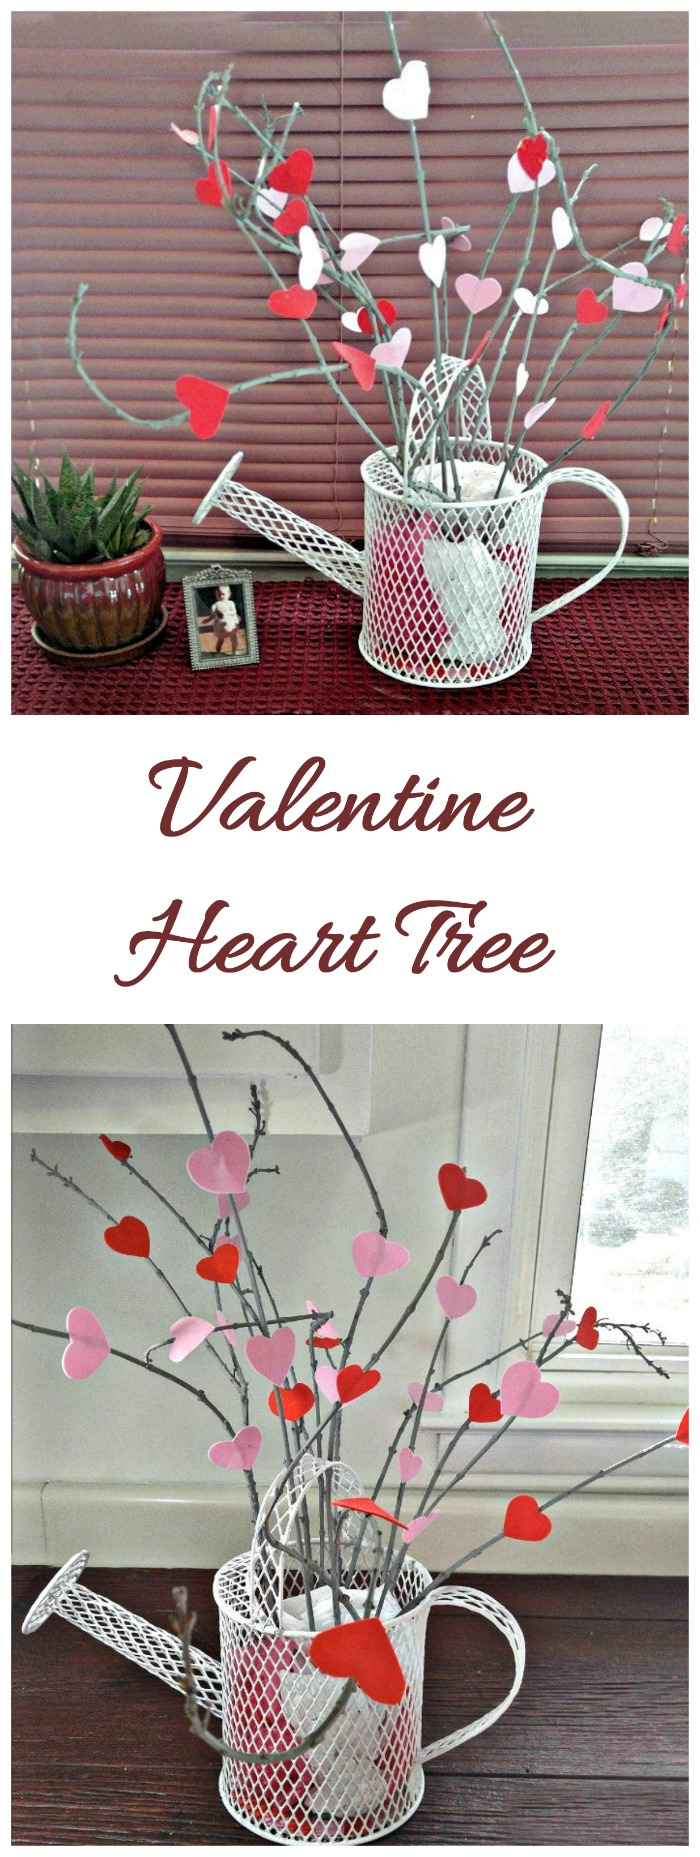 This Valentine heart tree is easy to make and looks lovely on any mantle.